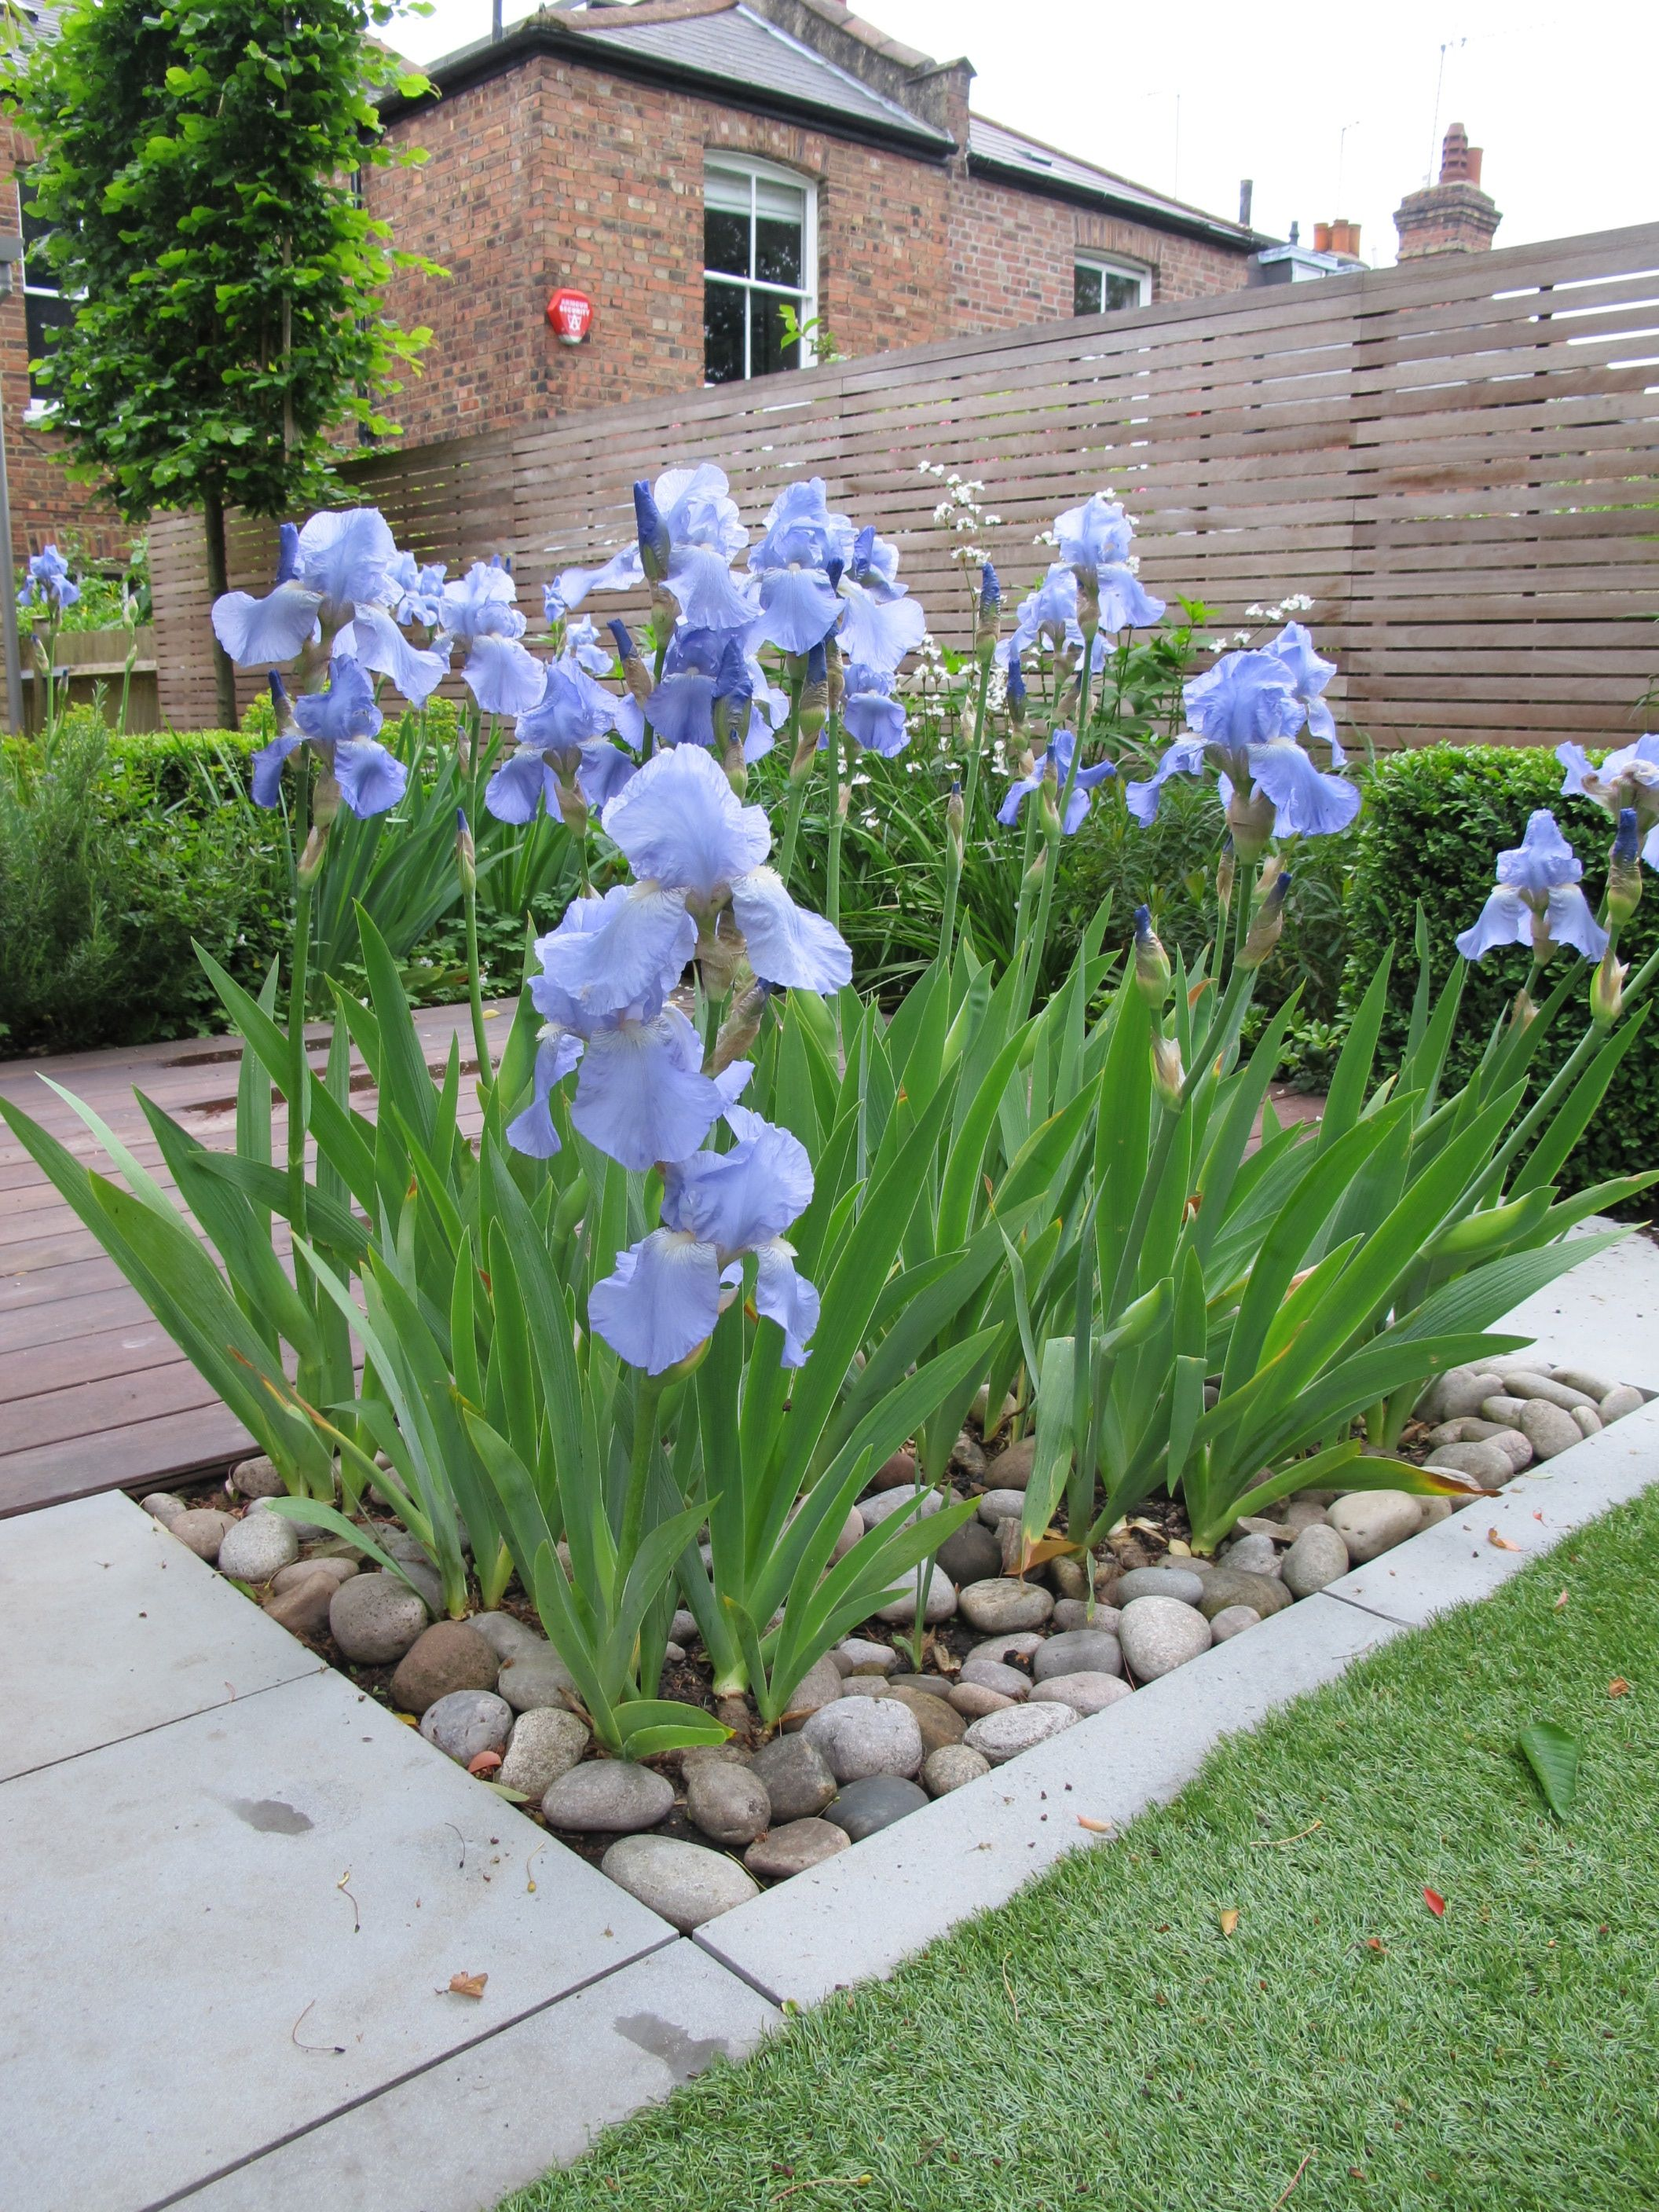 Wood Flower Beds In Front Of House